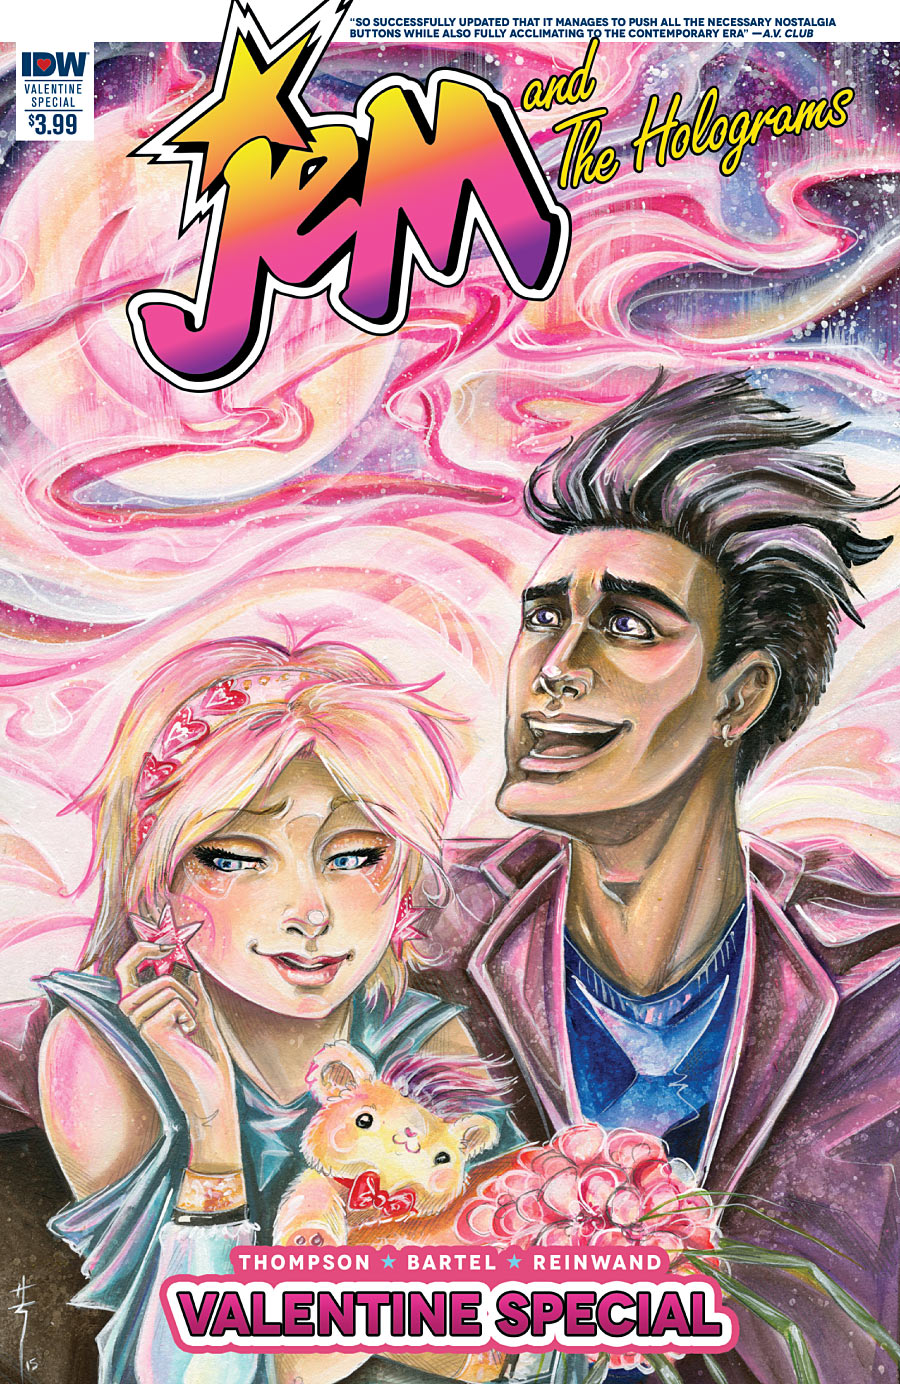 Jem and The Holograms Valentine Special #1